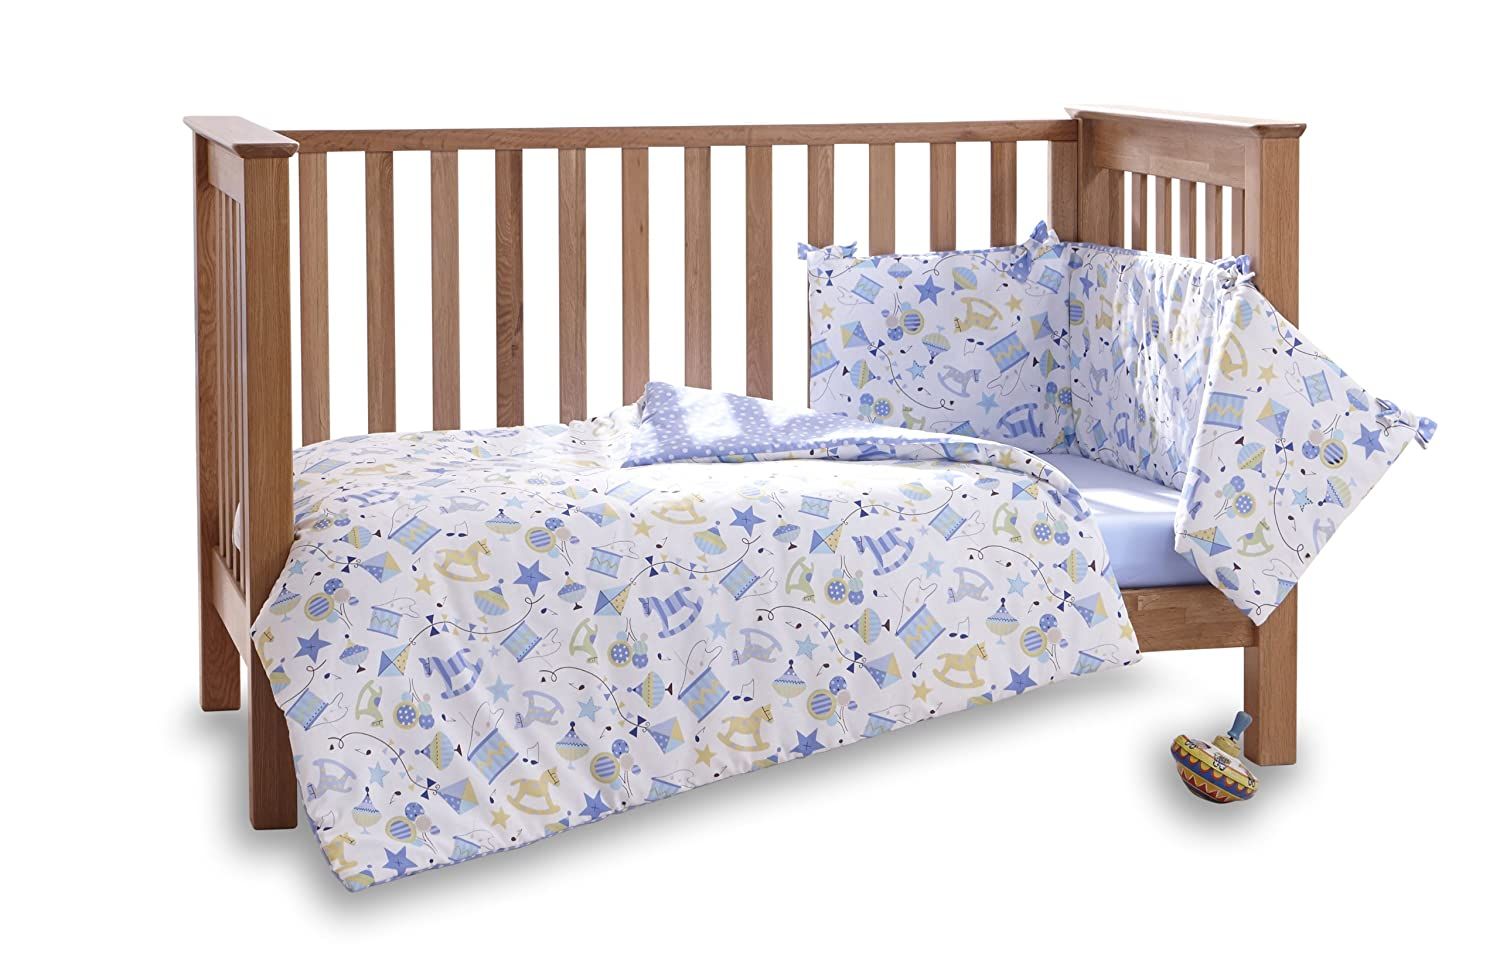 Clair de Lune Toy Shop Cot/Cot Bed Quilt and Bumper Set (2 Pieces) CL5155